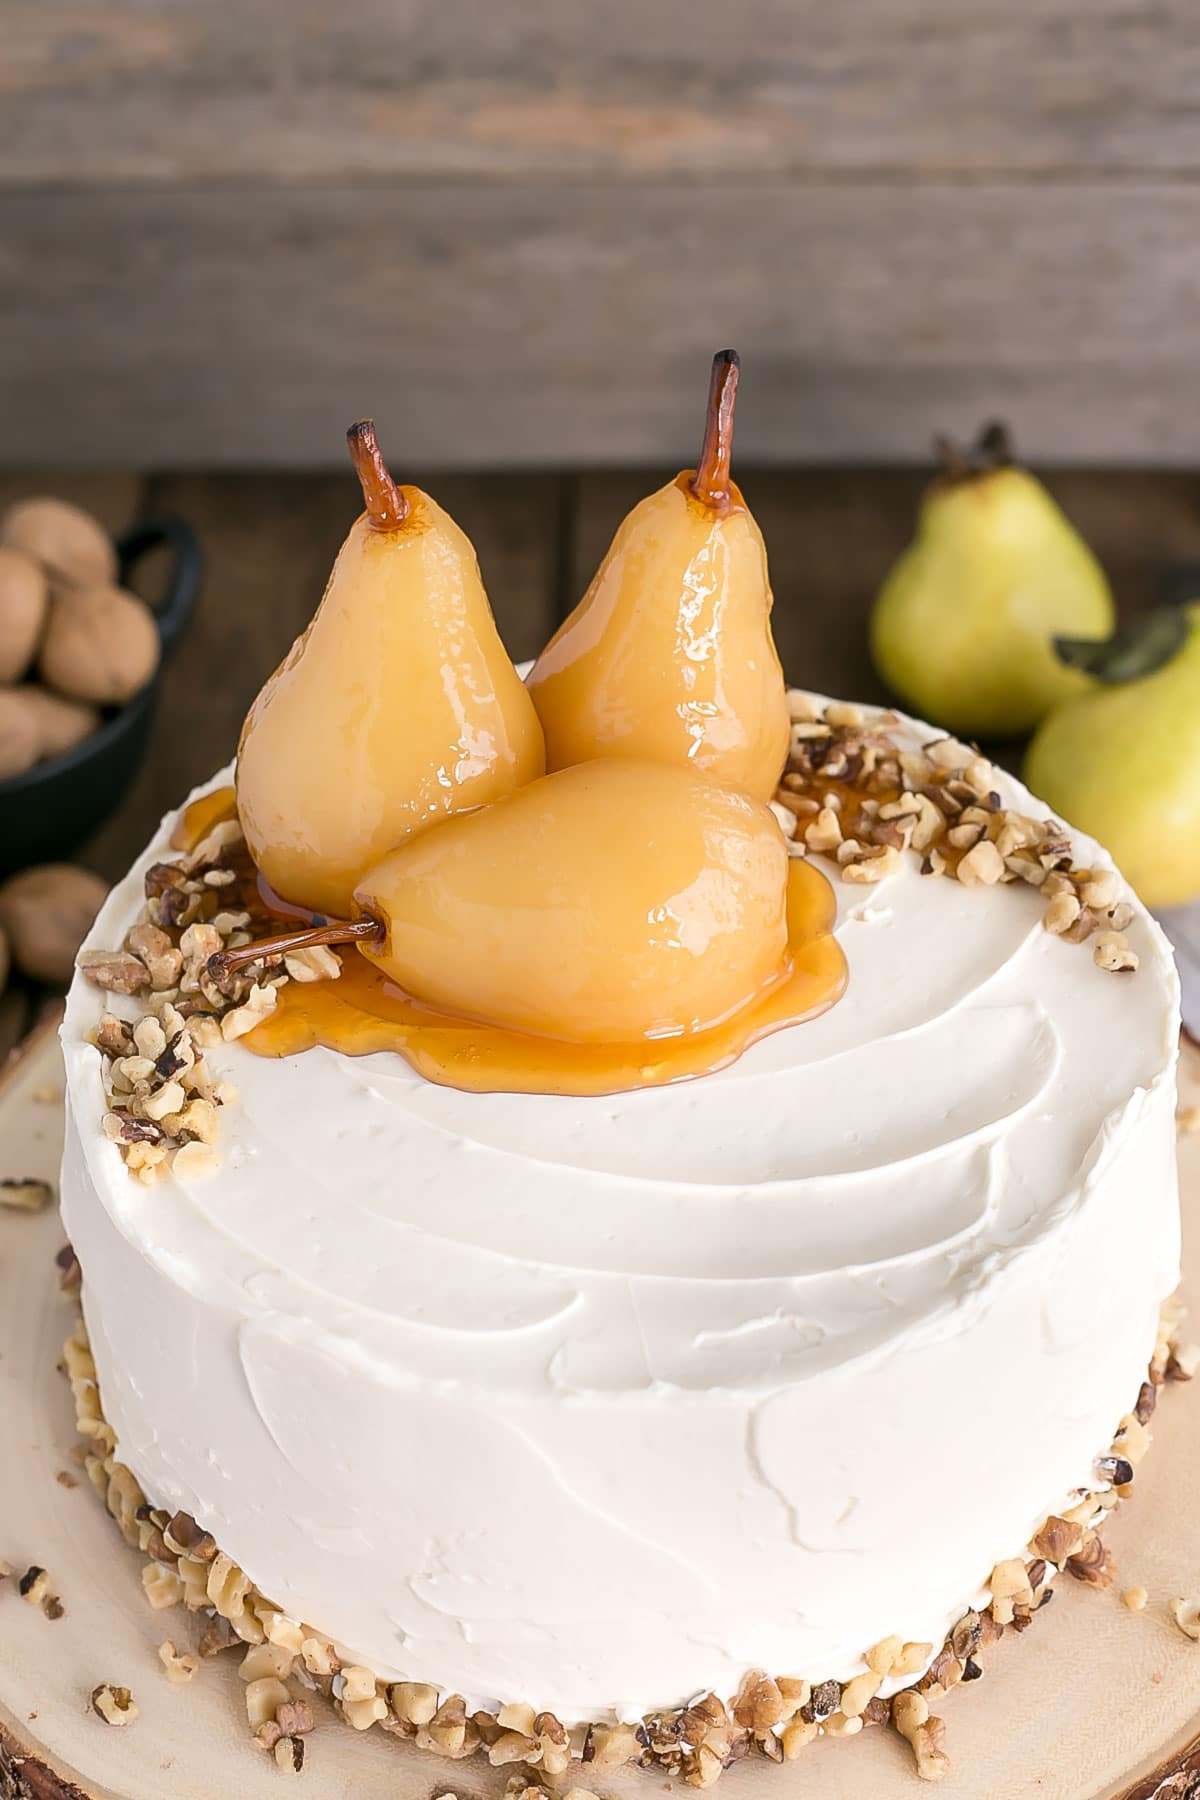 Close up of the pears on top of the cake.